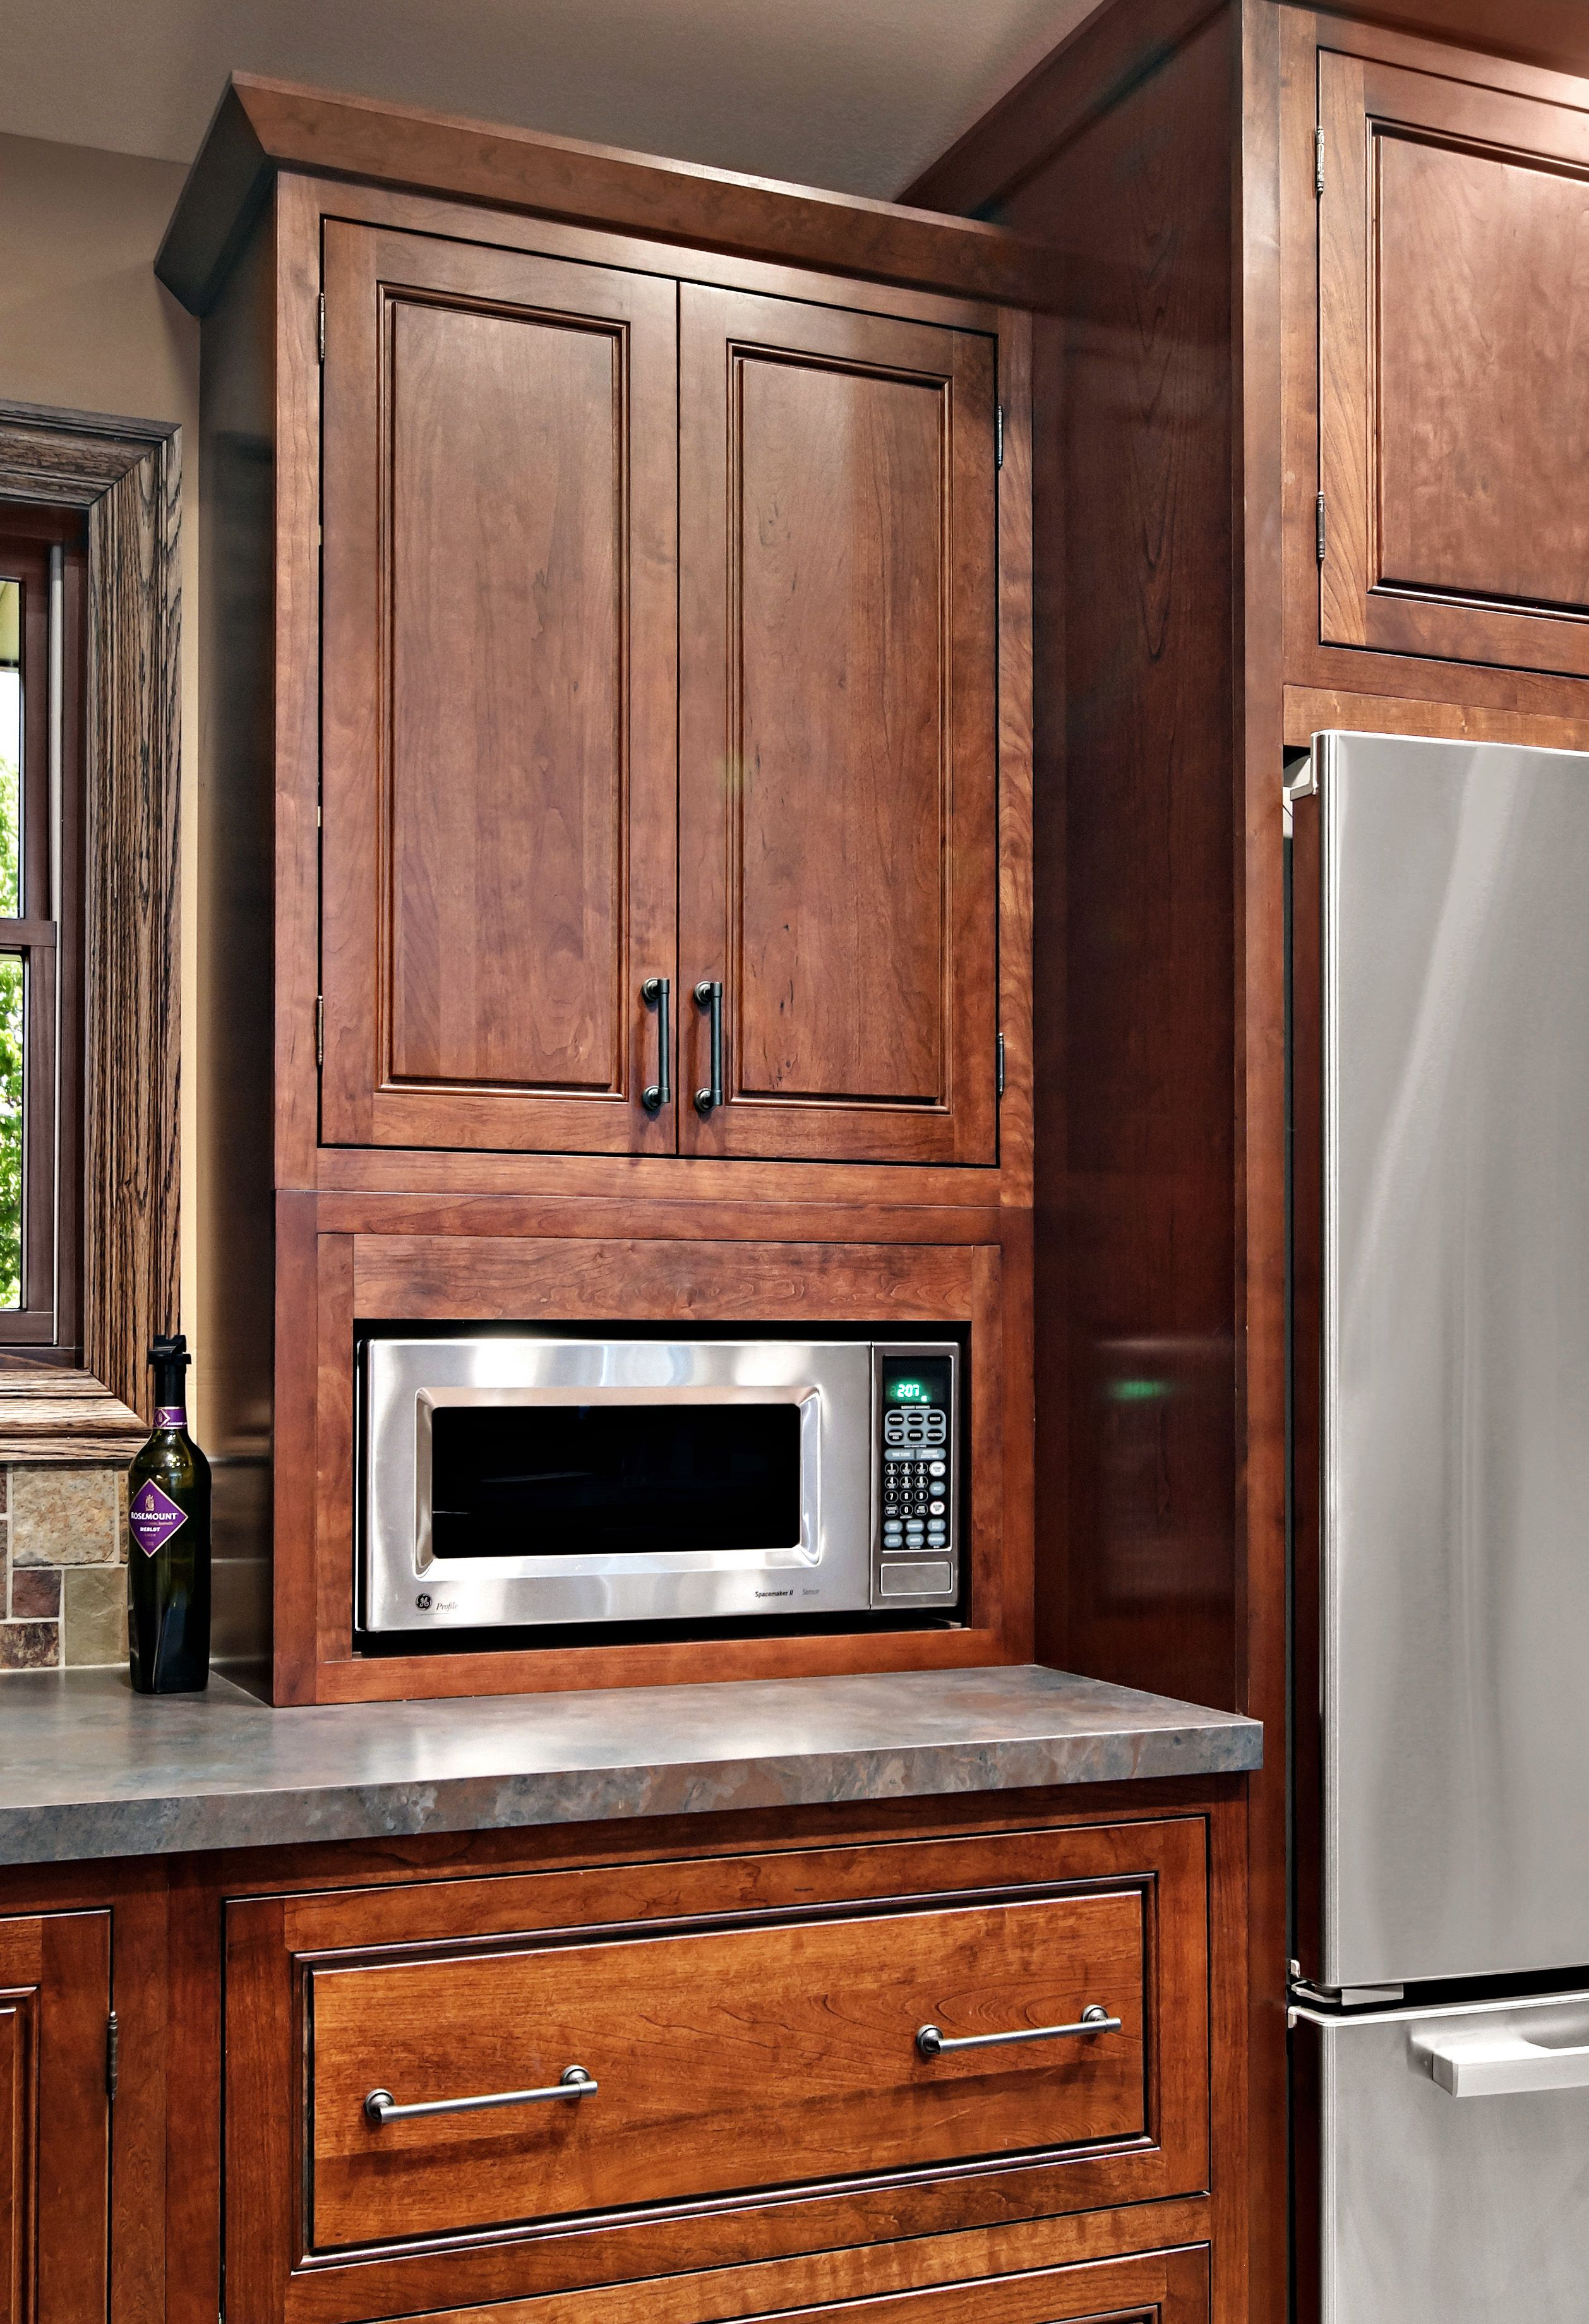 The Kitchen Cabinets Are The Fairmont Inset Style From Cliqstudios Com In The Cherry Russe Built In Microwave Cabinet Microwave Cabinet Cherry Cabinets Kitchen